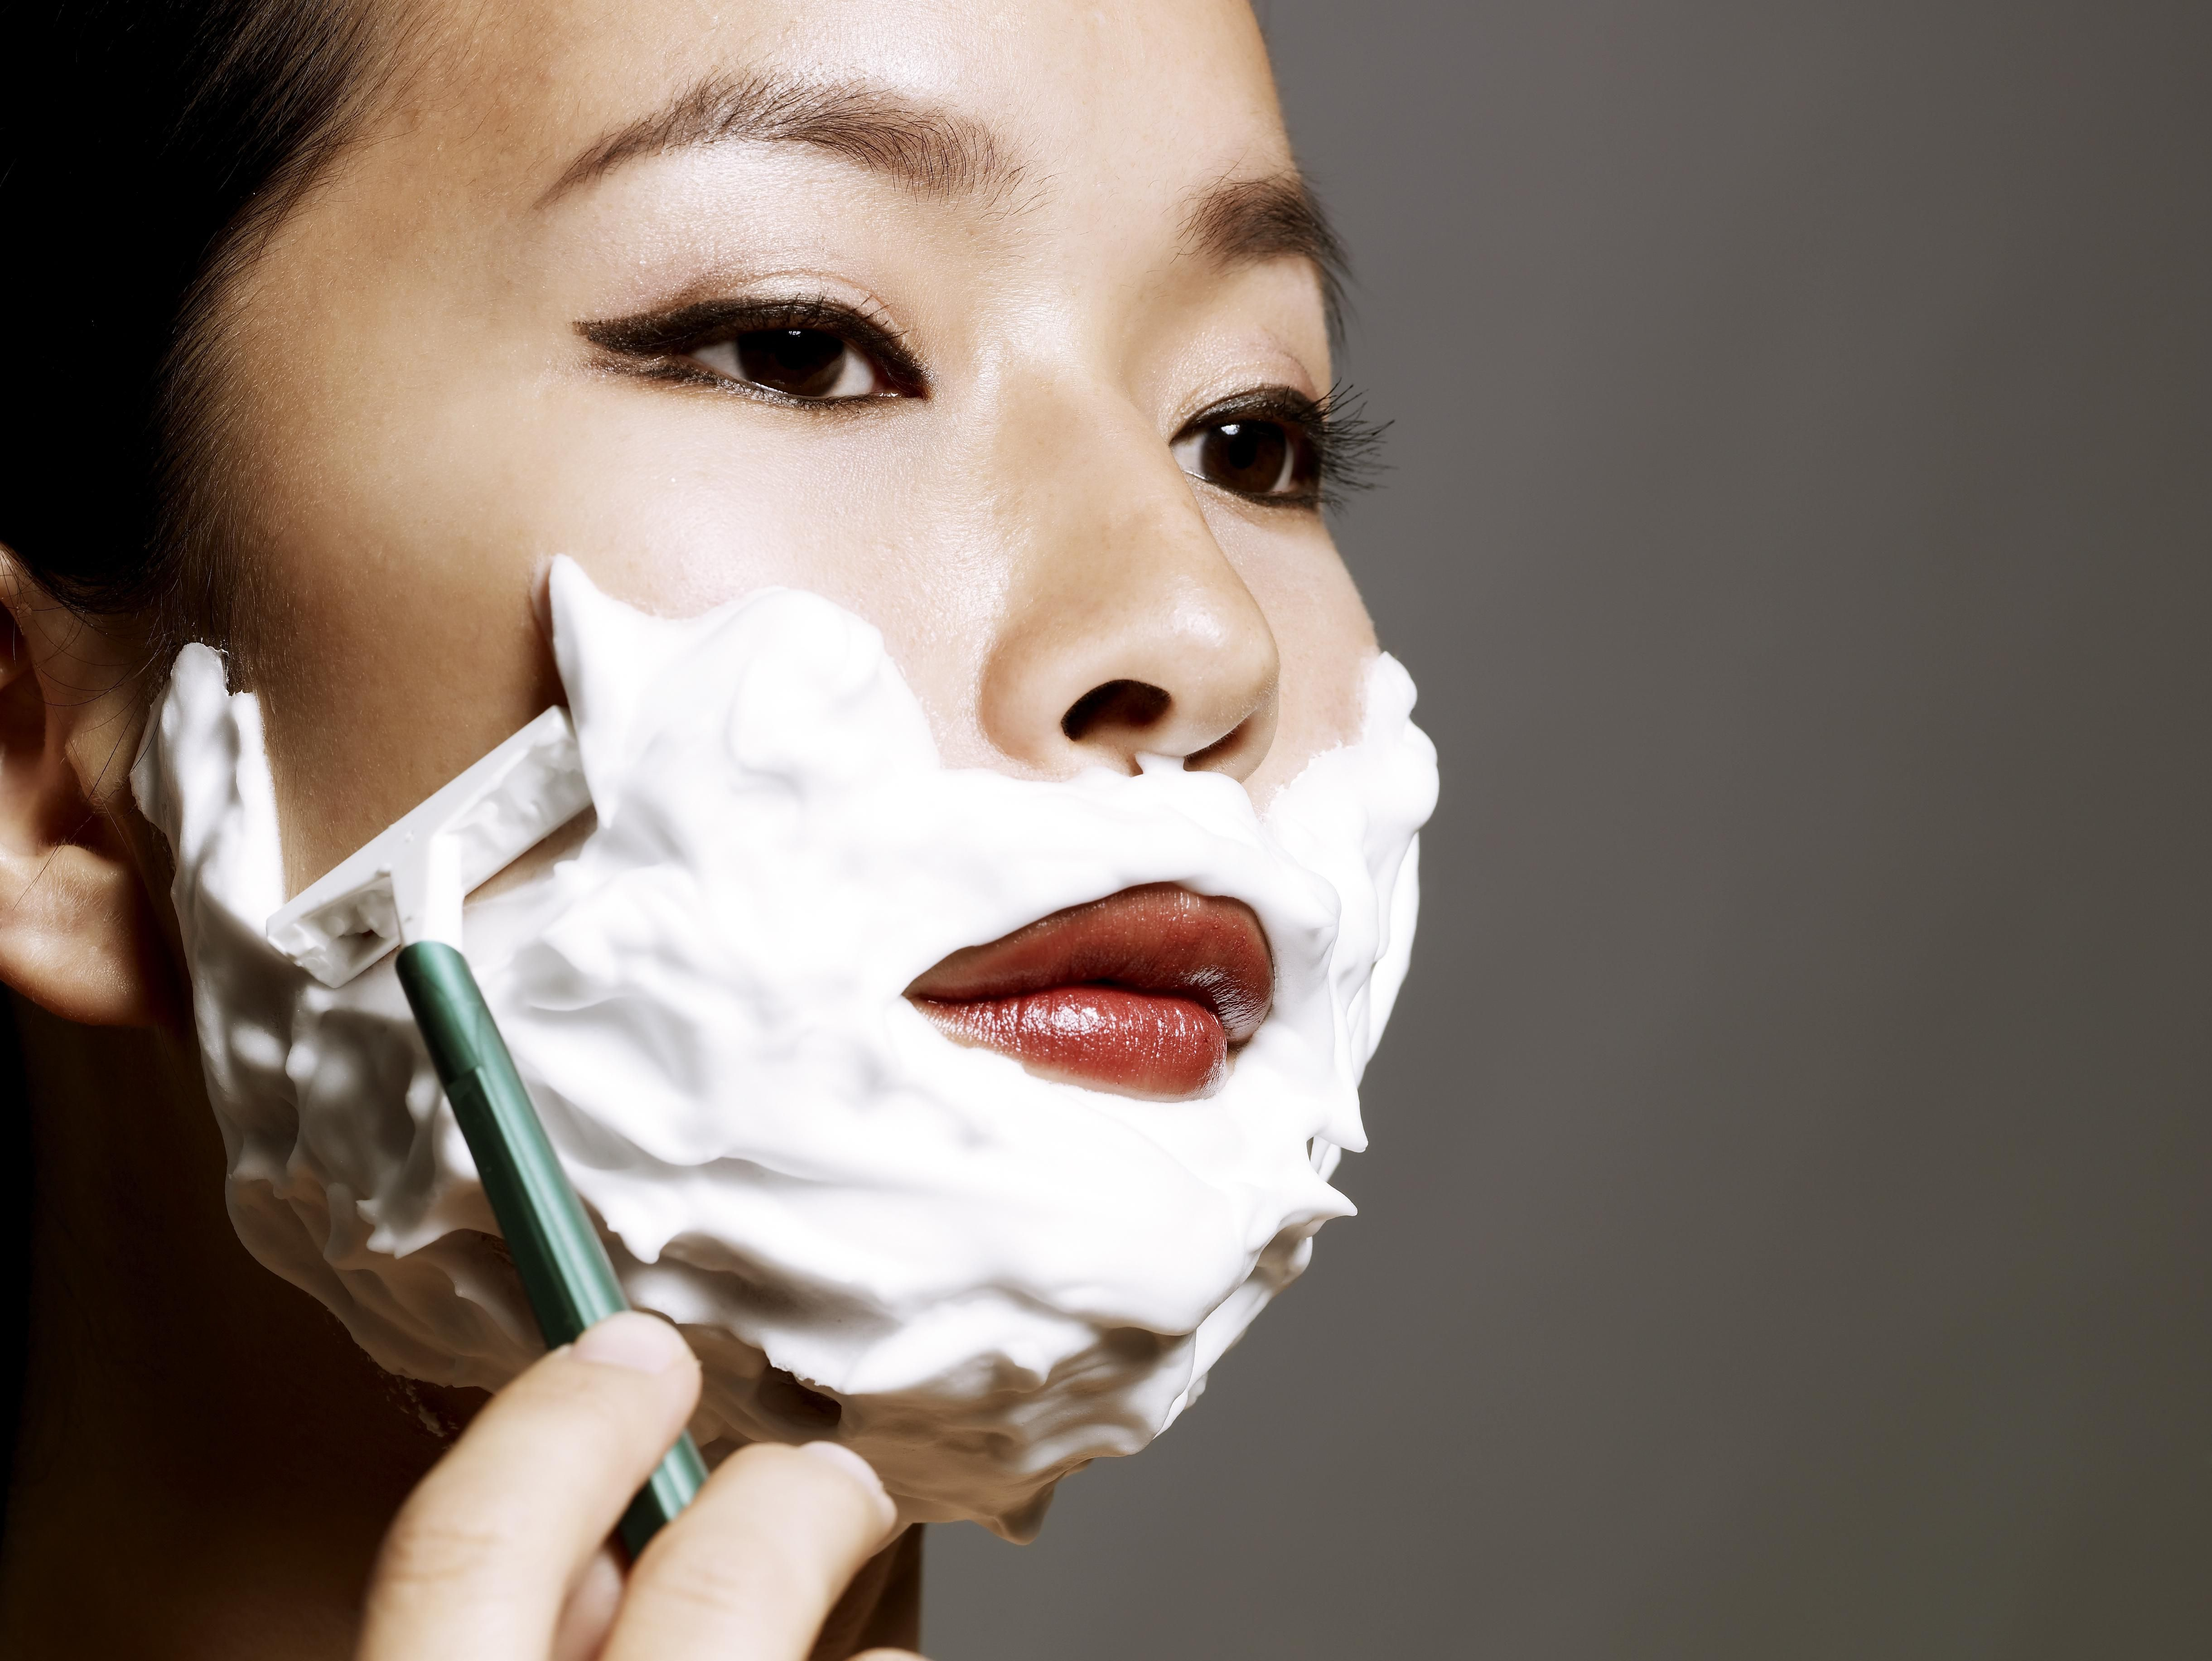 Facial Hair Removal for Women: 10 Ways to Get Smooth Skin